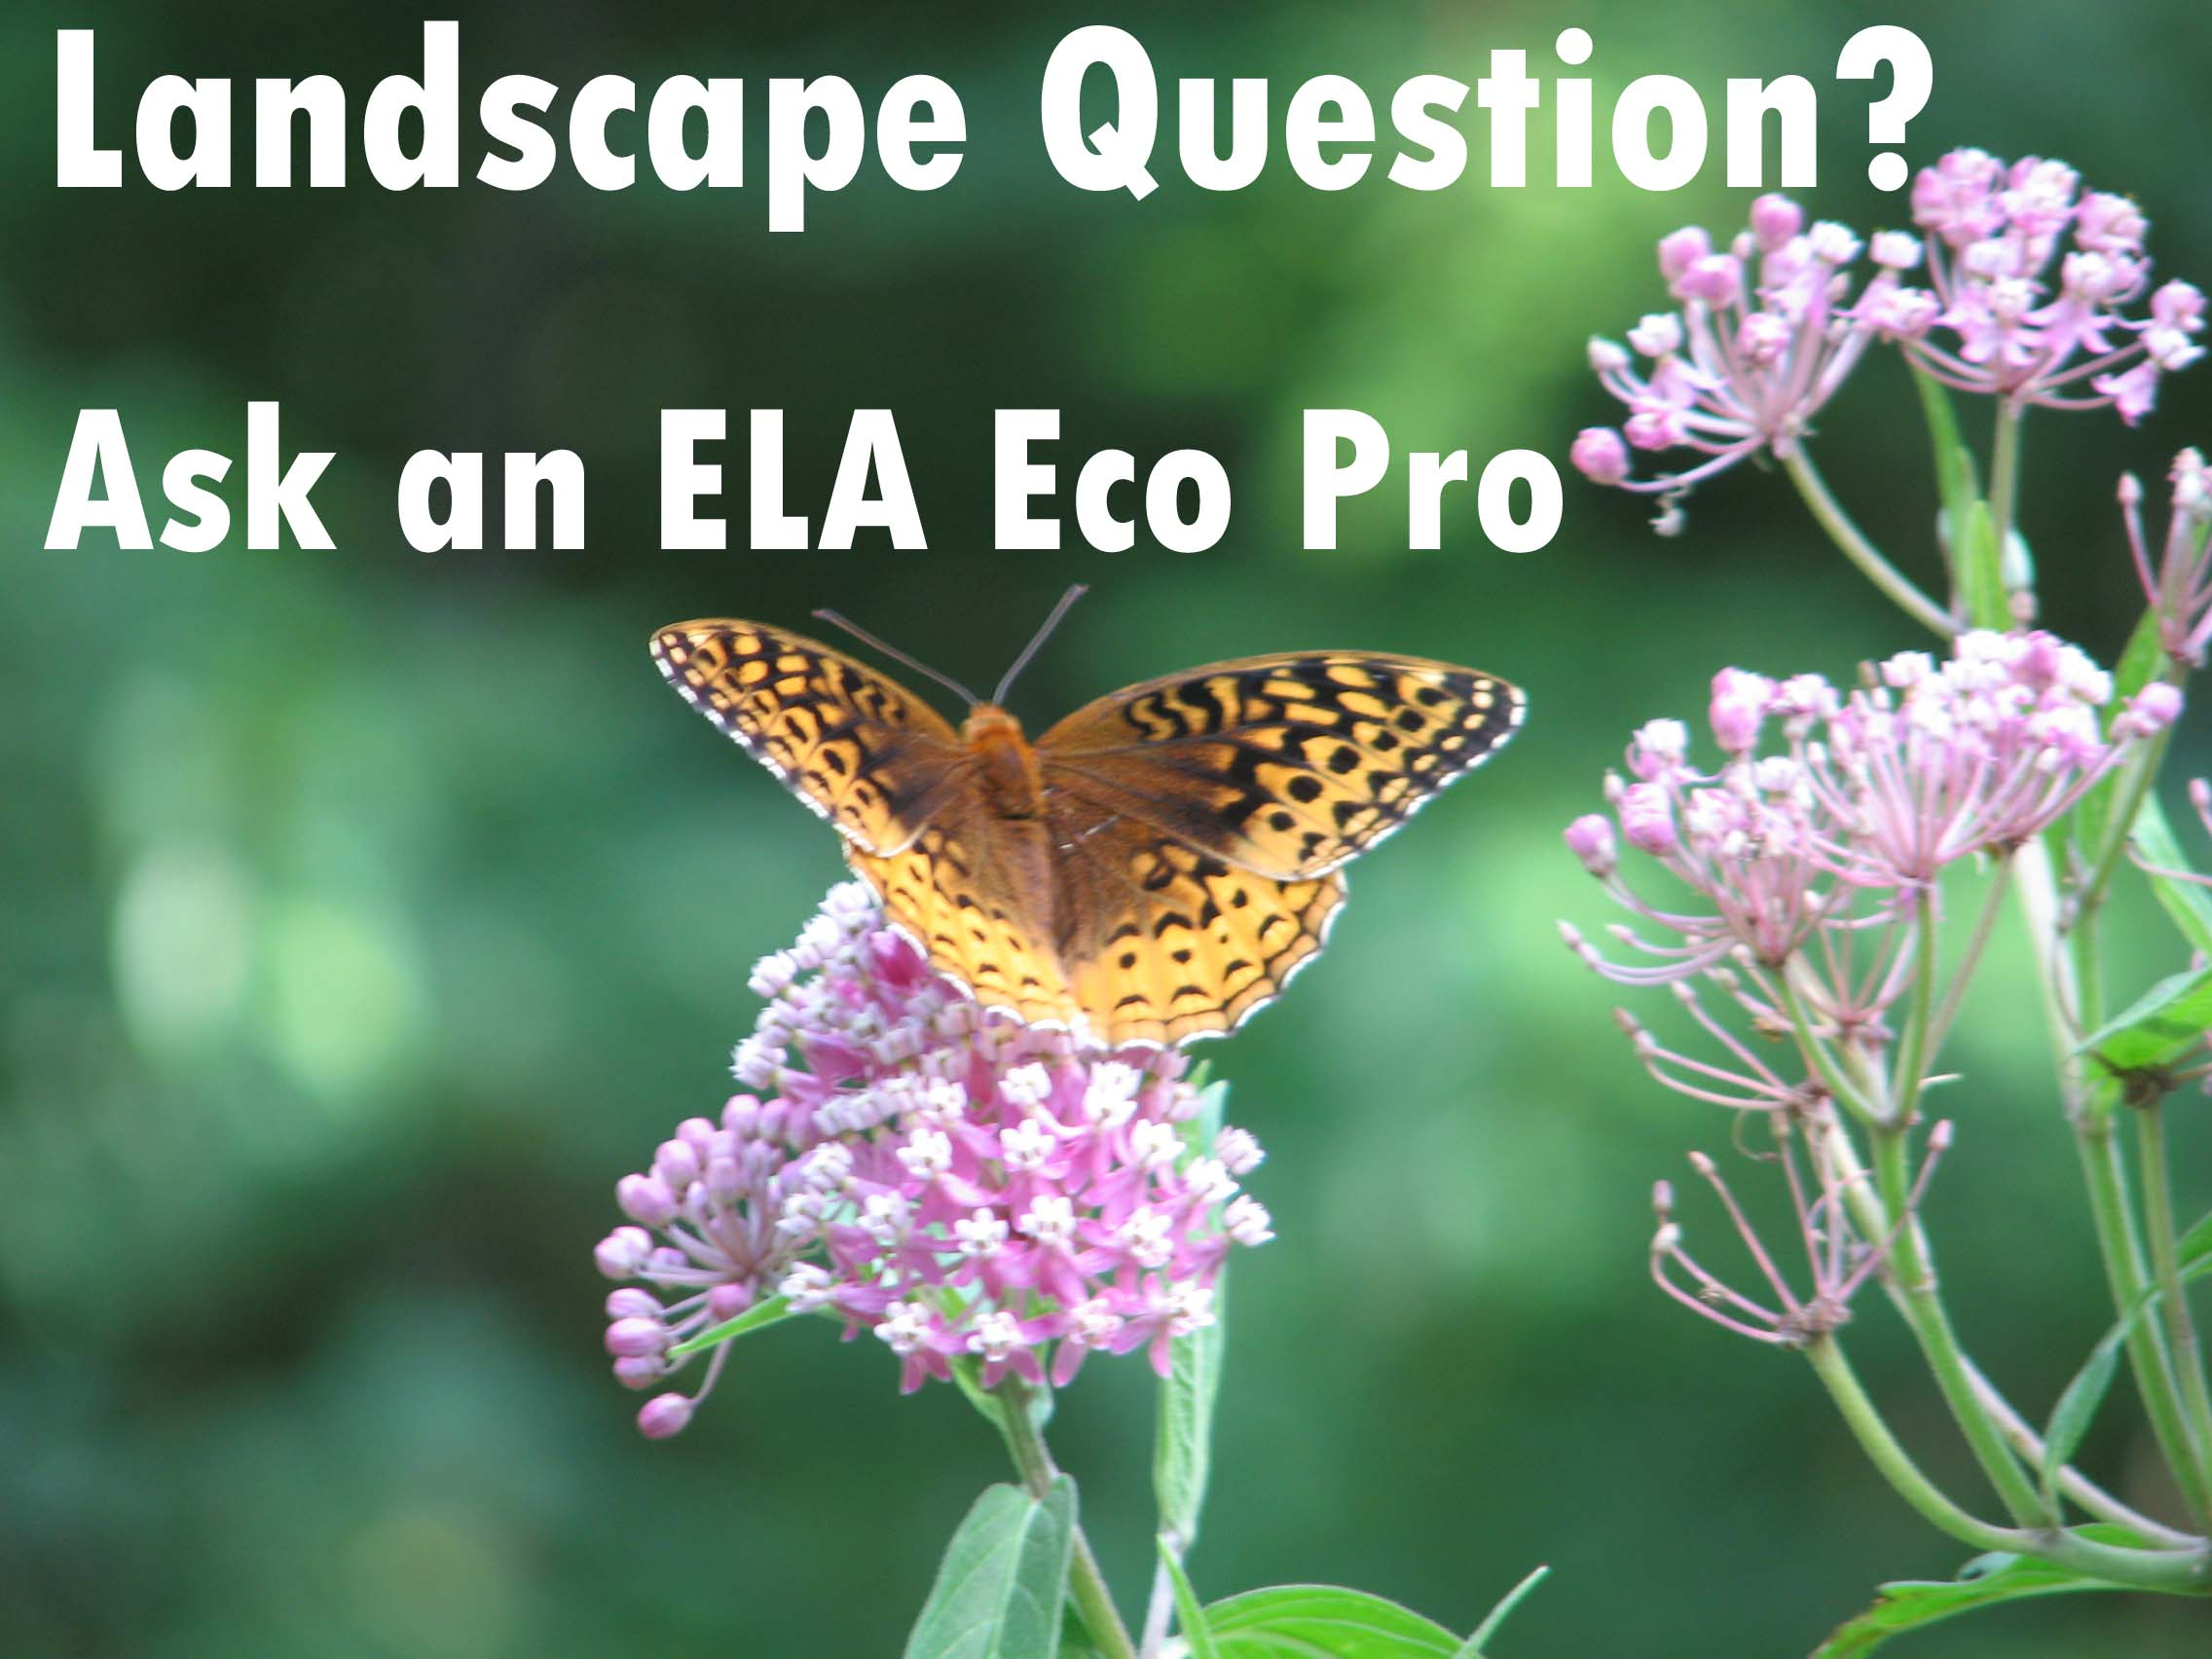 Ask an Eco Pro